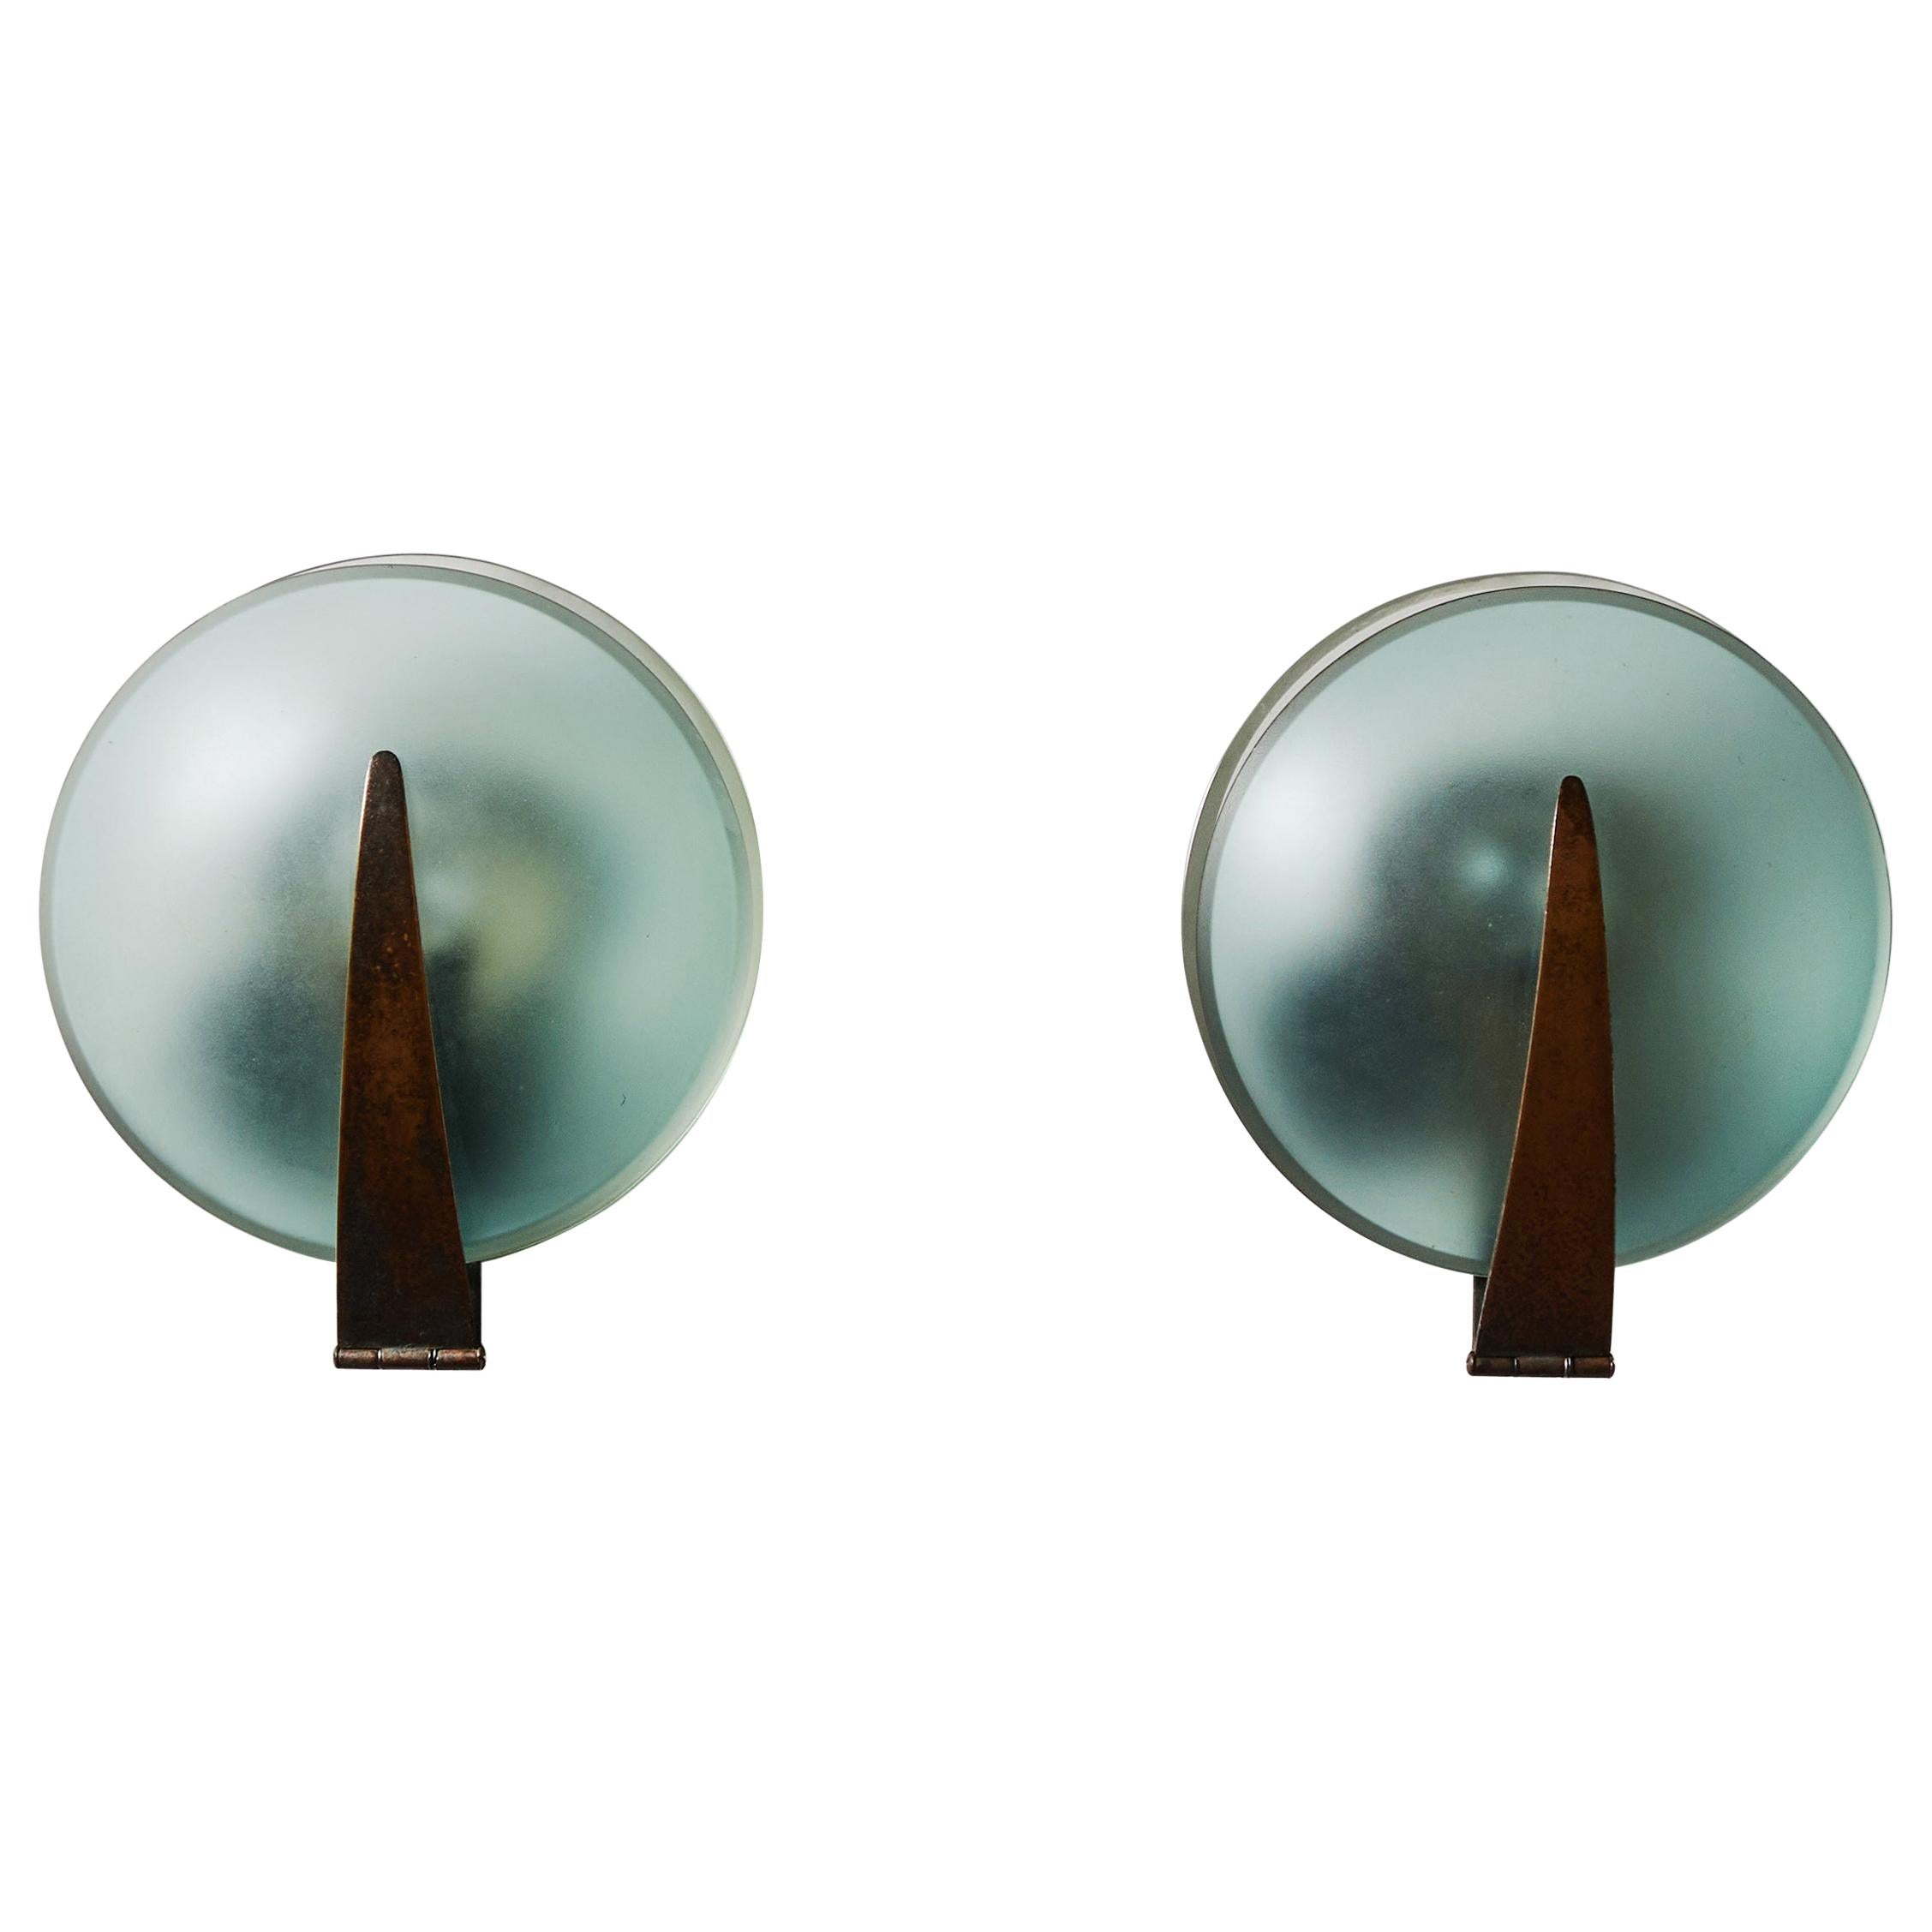 Rare Pair of Sconces by Max Ingrand for Fontana Arte